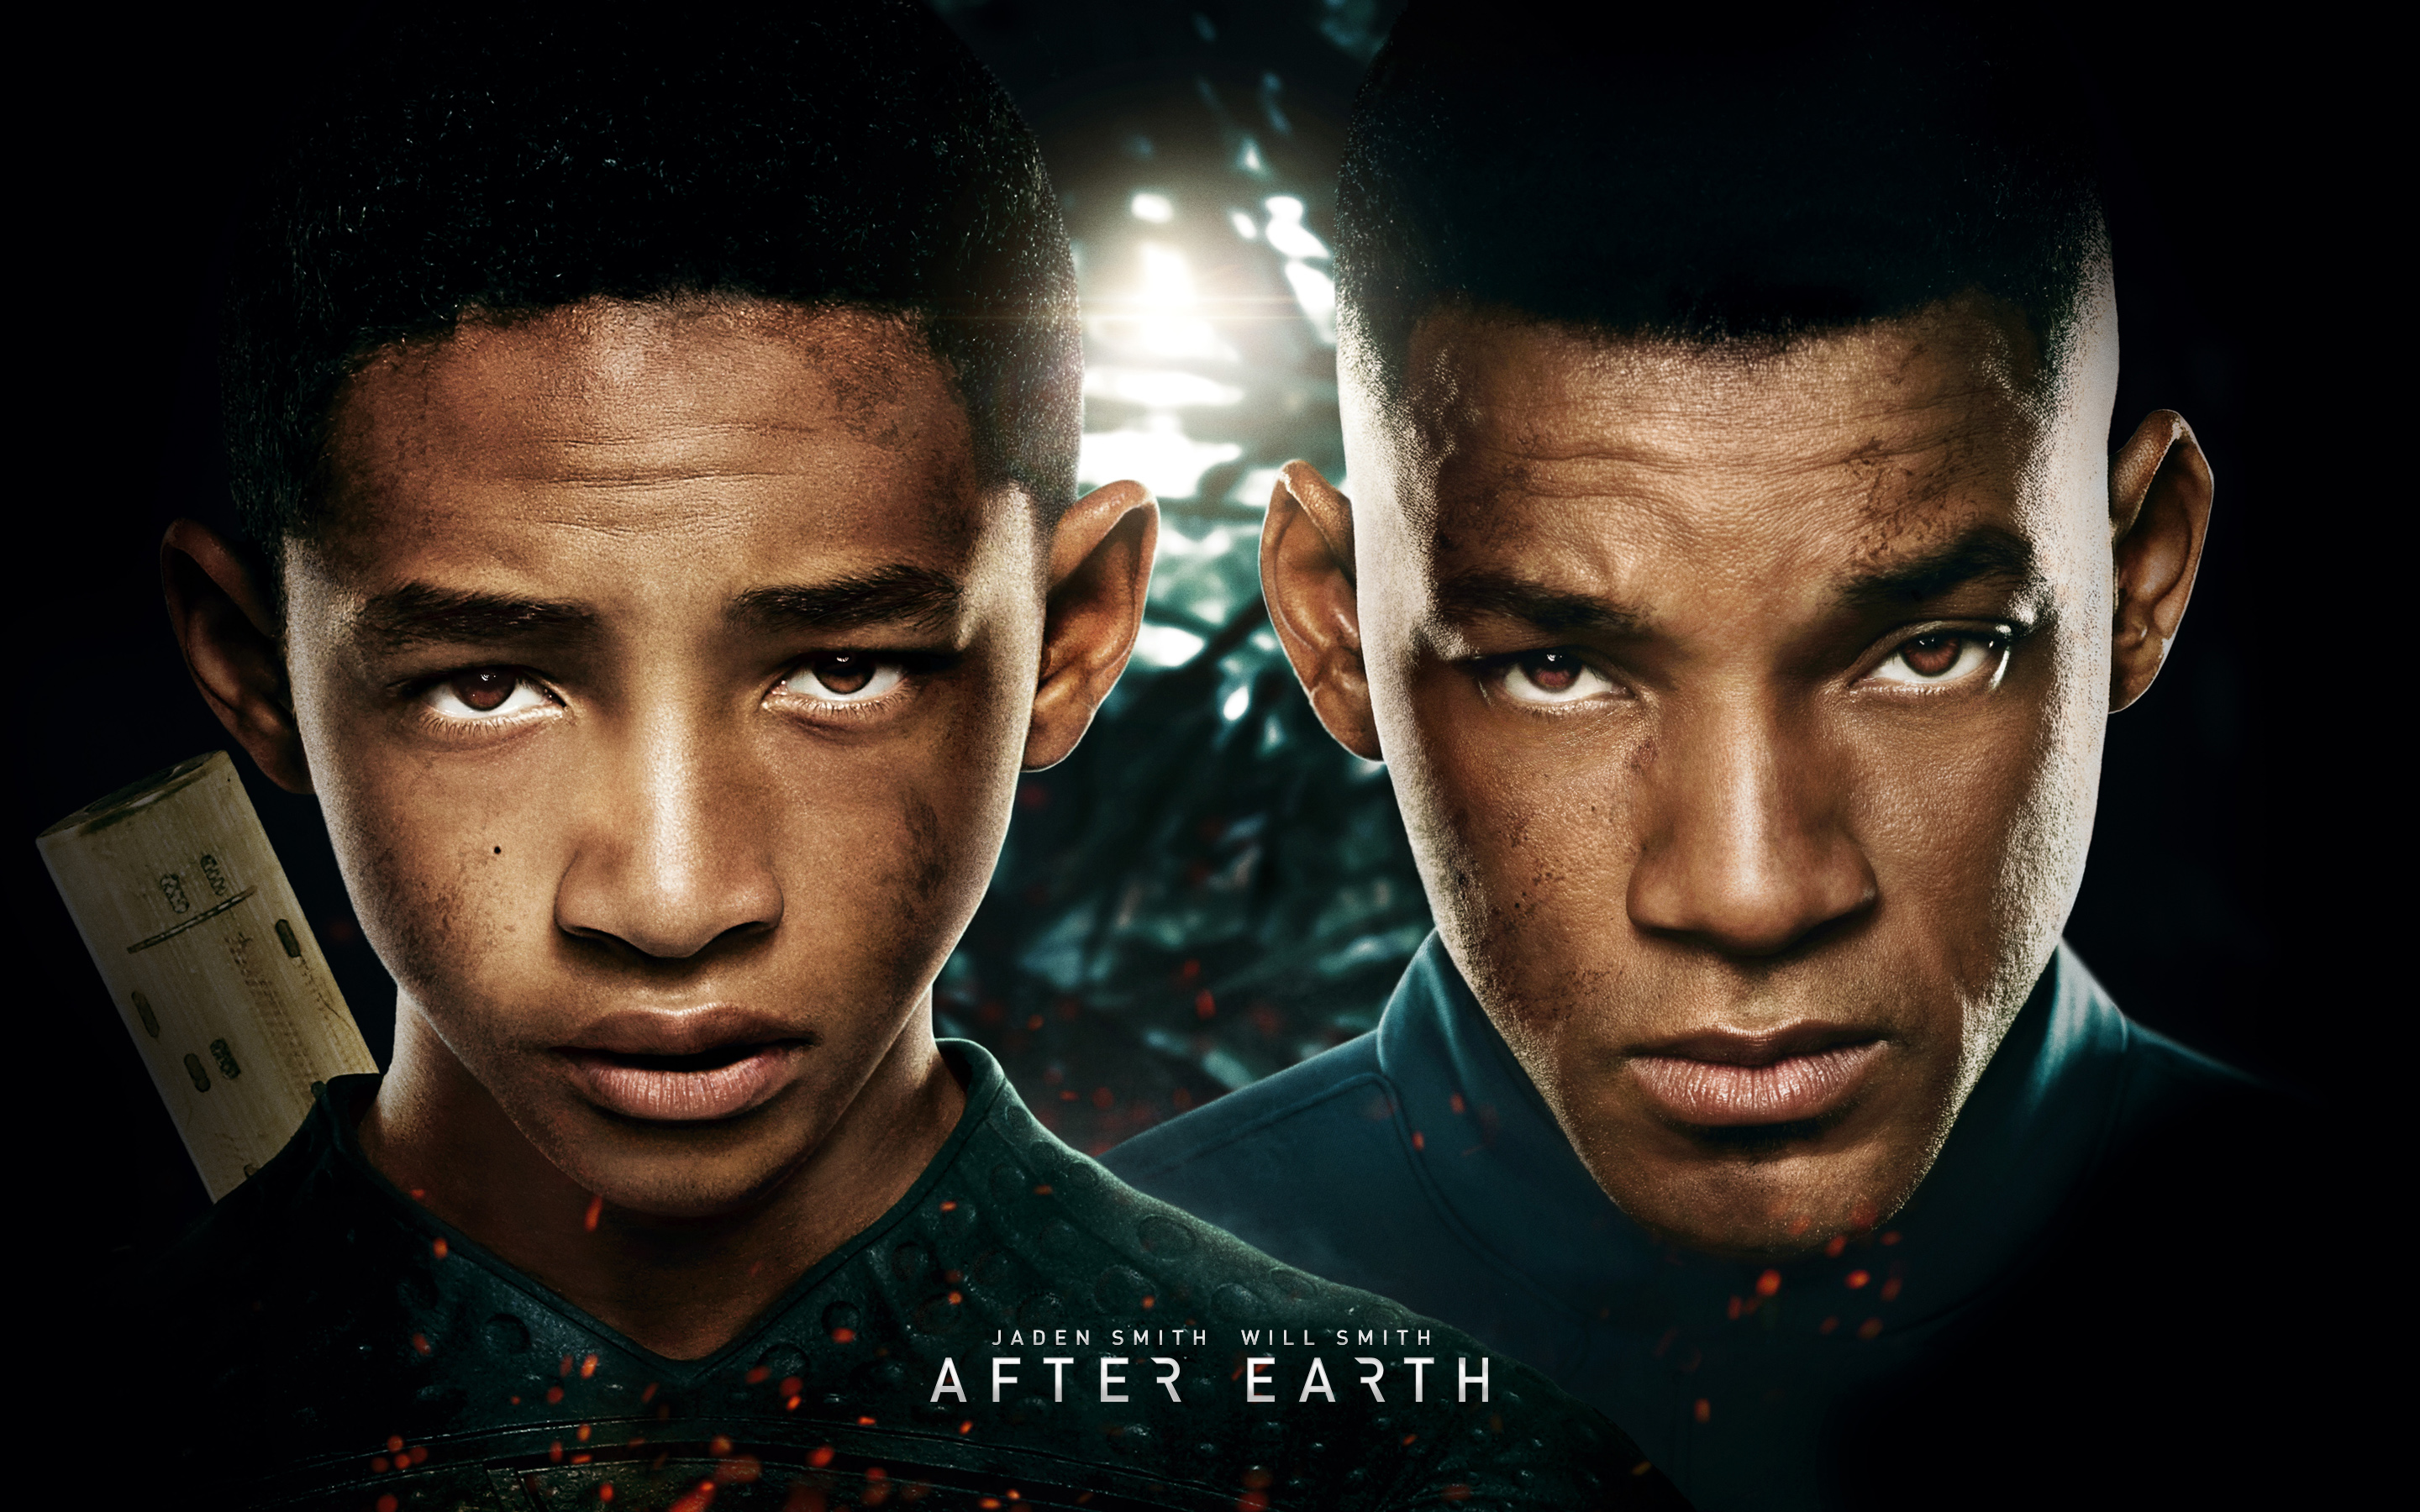 After Earth has had an interesting journey leading up to its release. It started out with a surprisingly cool trailer that everyone was abuzz over, ...